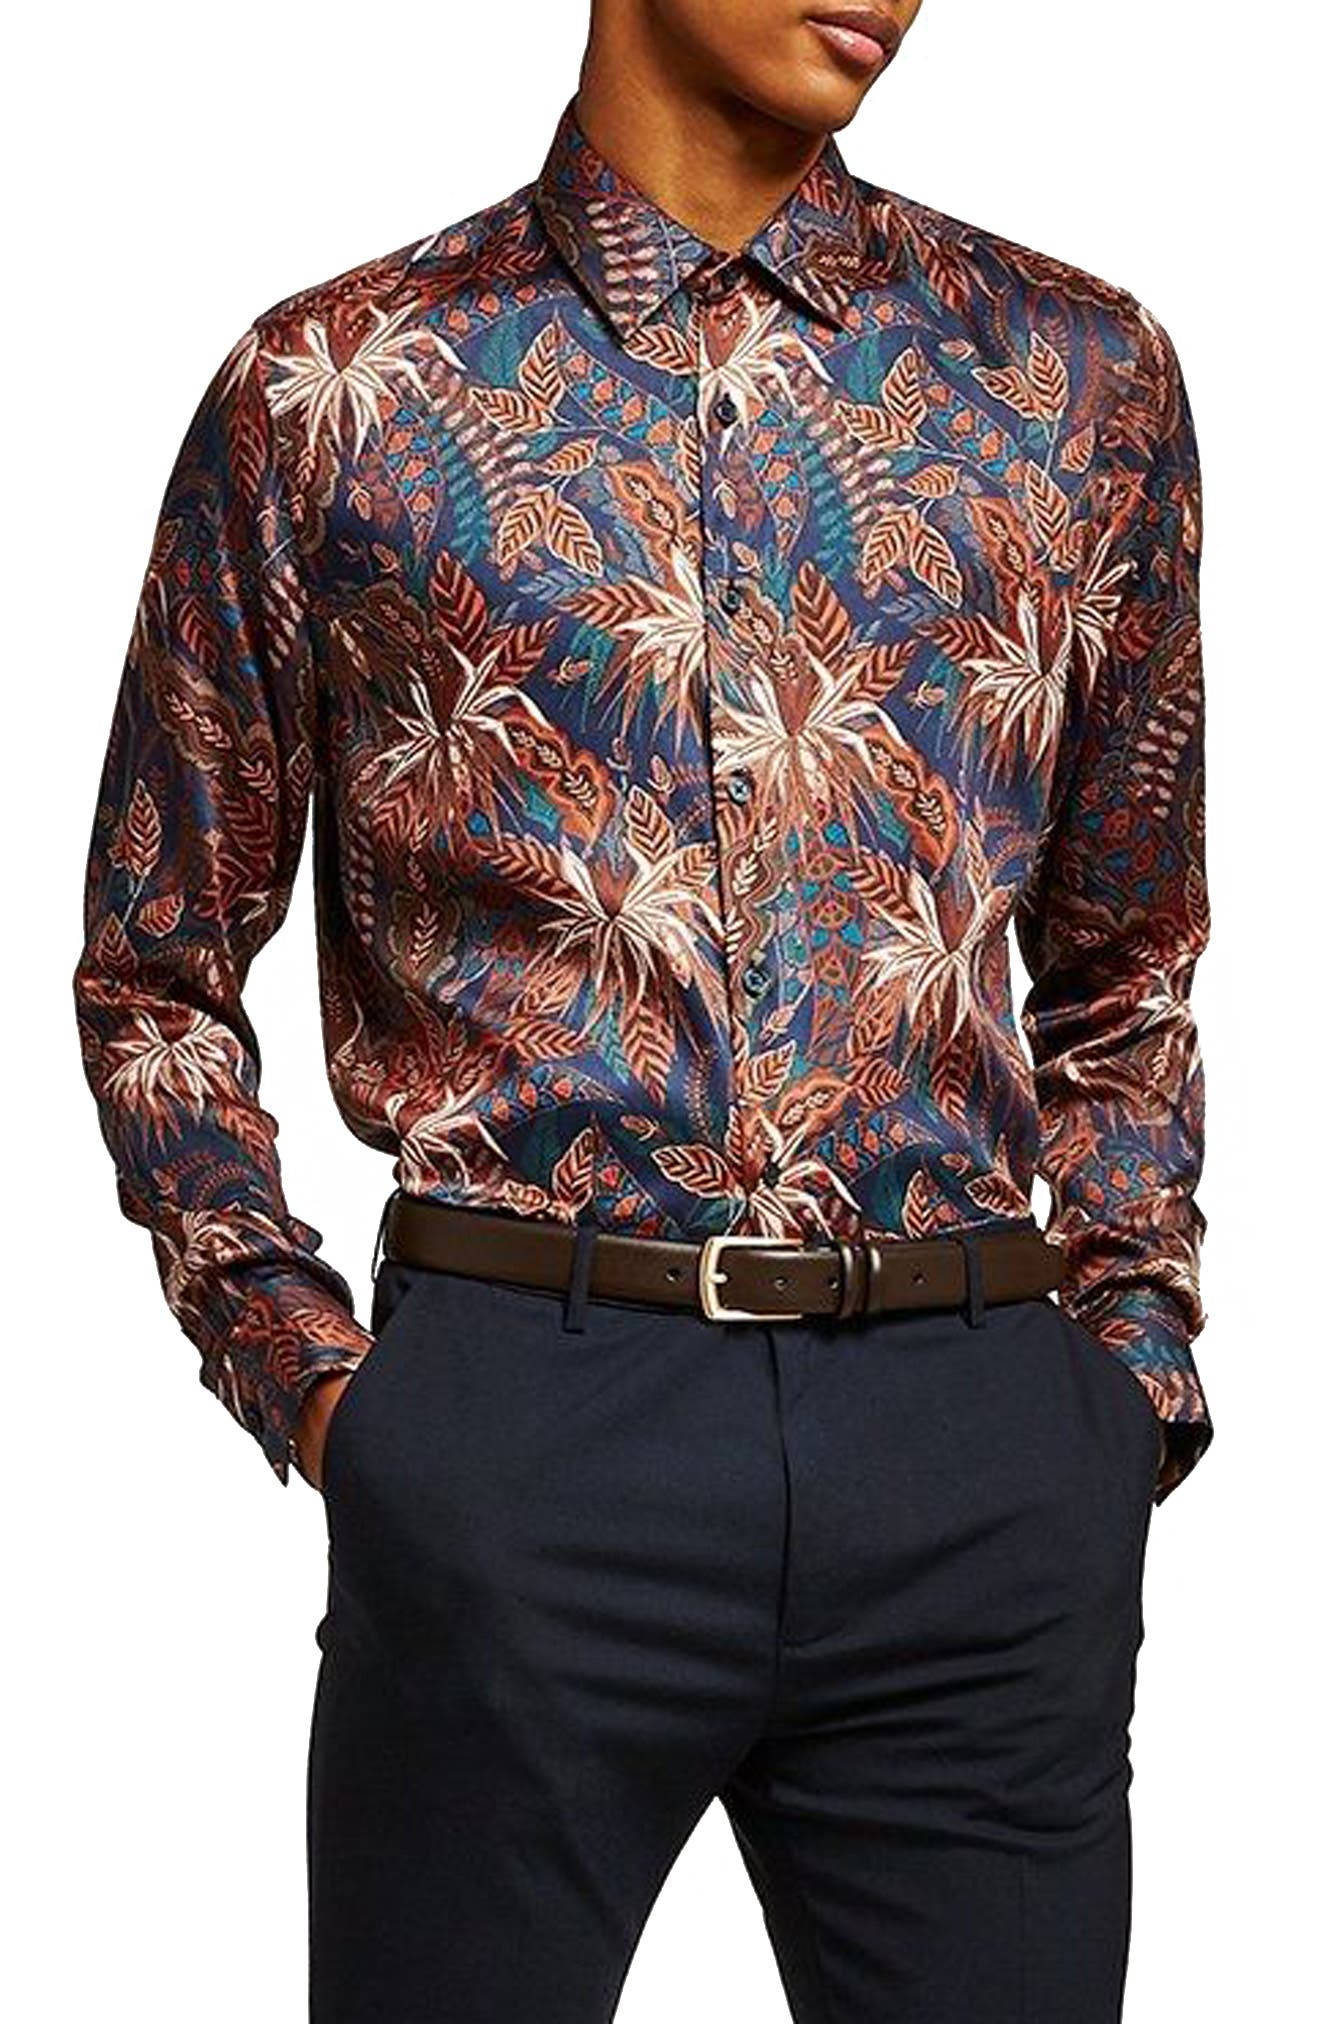 Slim Fit Floral Print Shirt,                             Main thumbnail 1, color,                             400